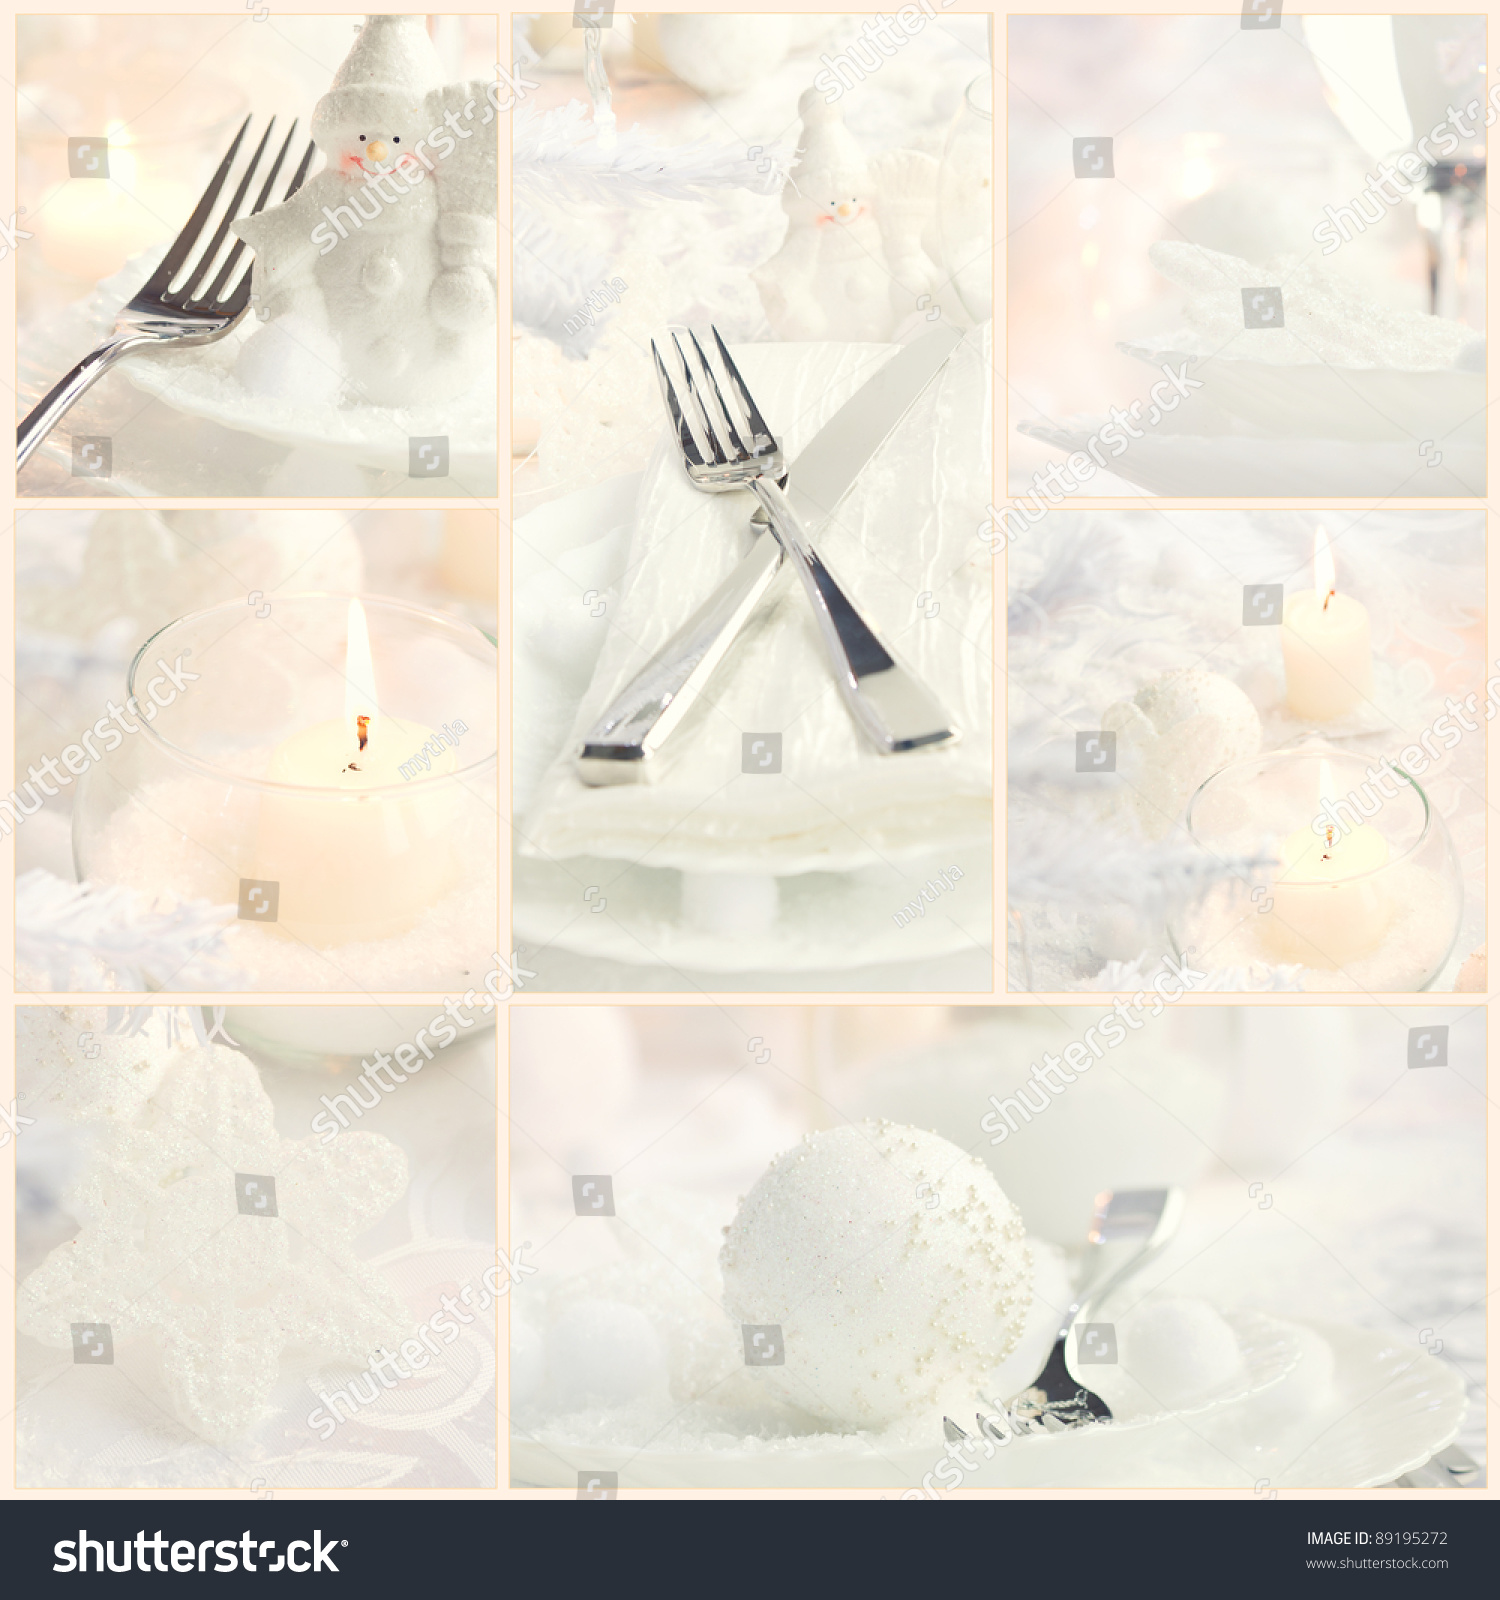 Fancy restaurant table setting - Save To A Lightbox